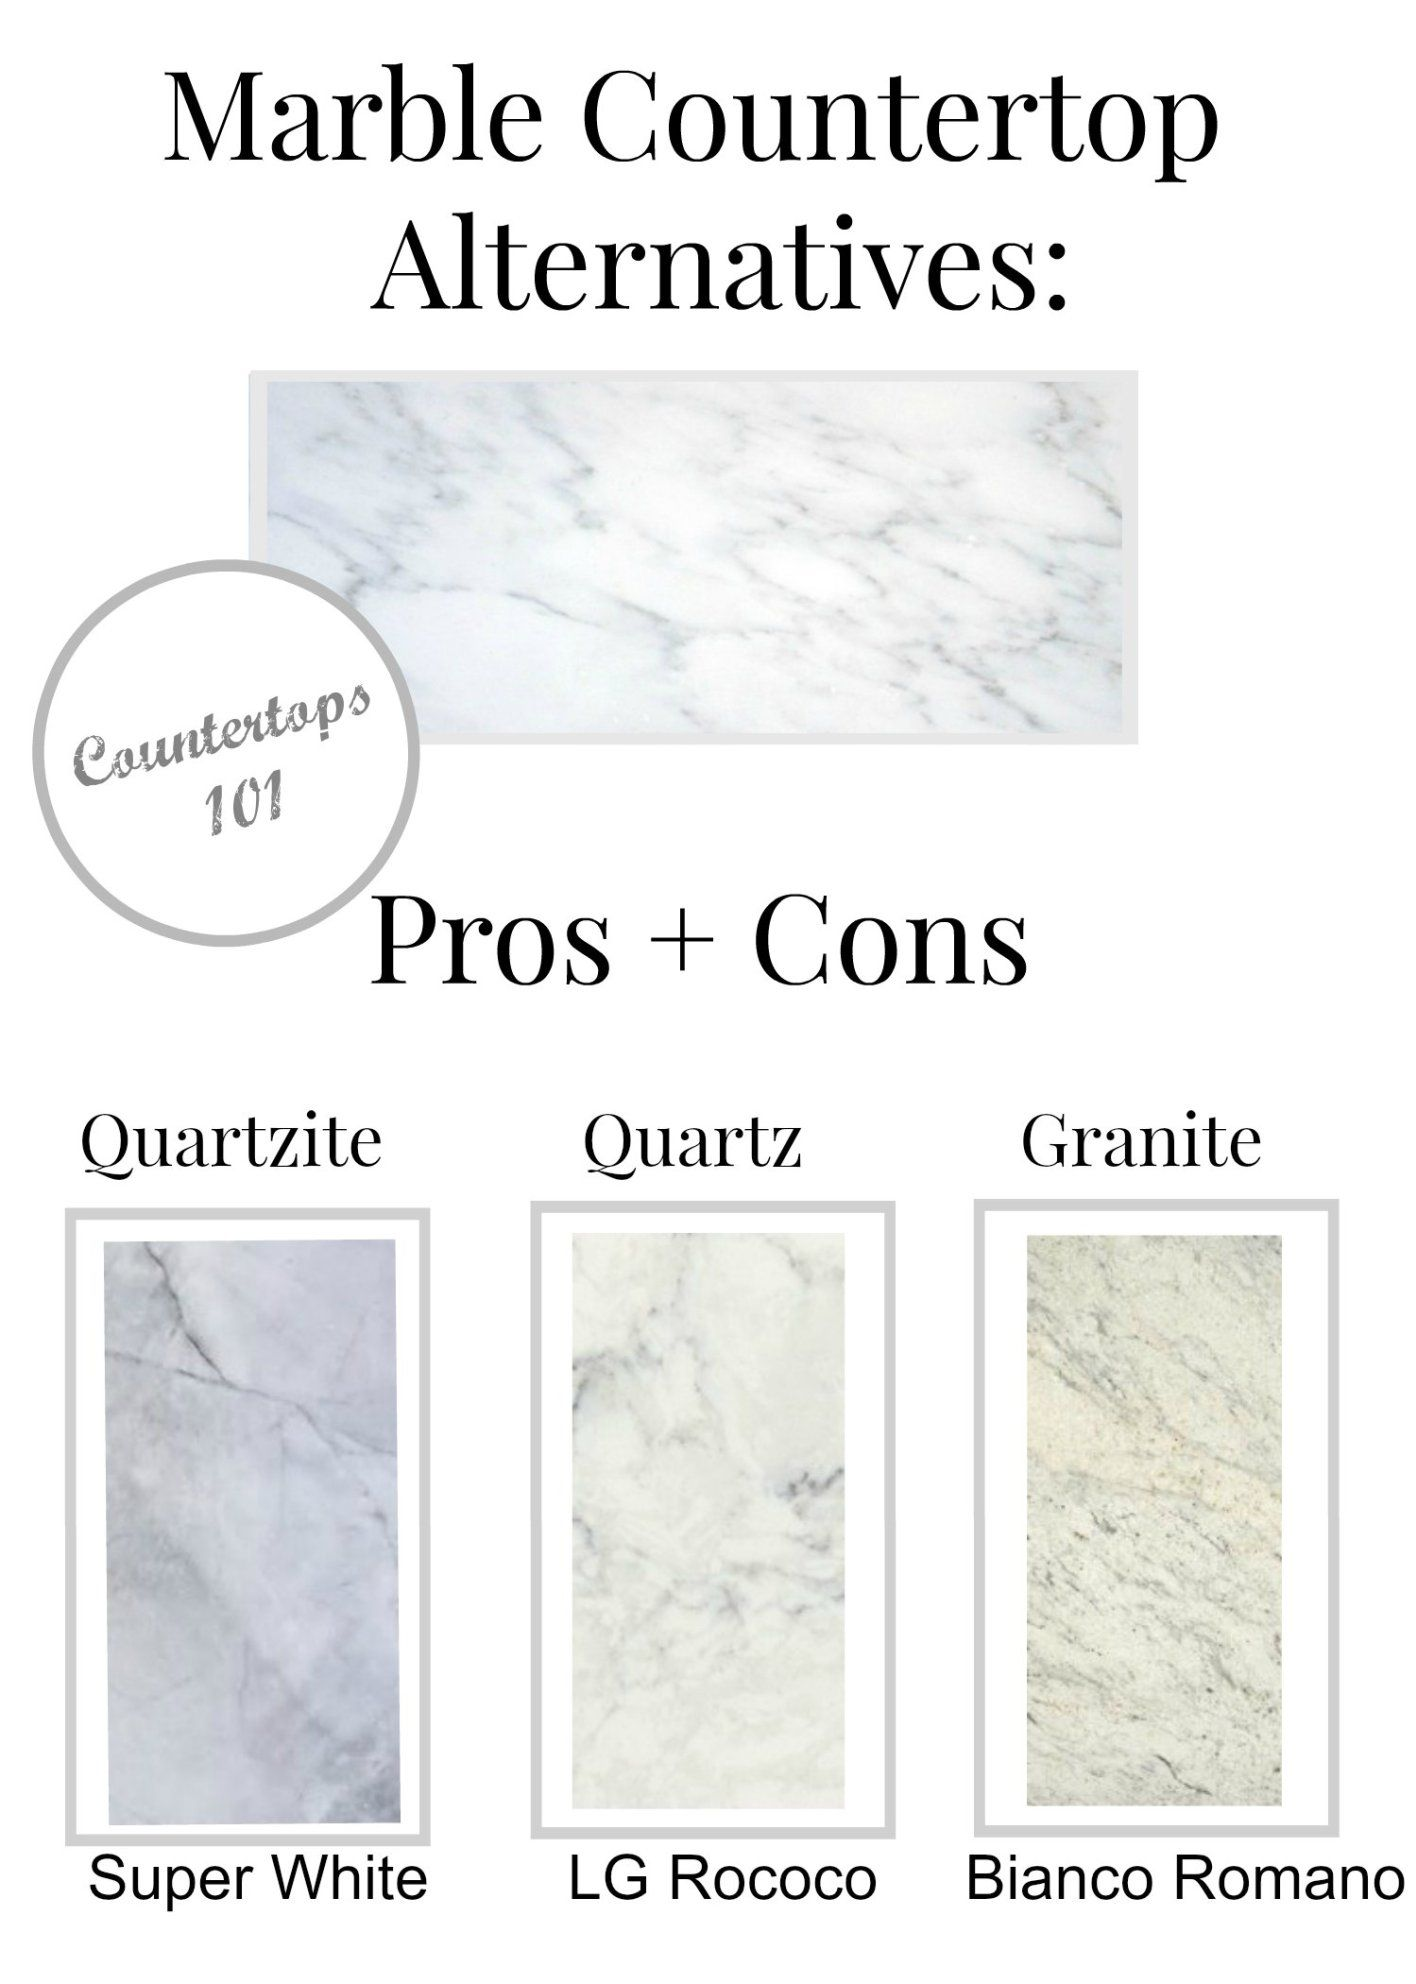 Marble kitchen countertops pros and cons - Marble Countertop Alternatives Pros Cons Elizabeth Bixler Designs Blog Material Look